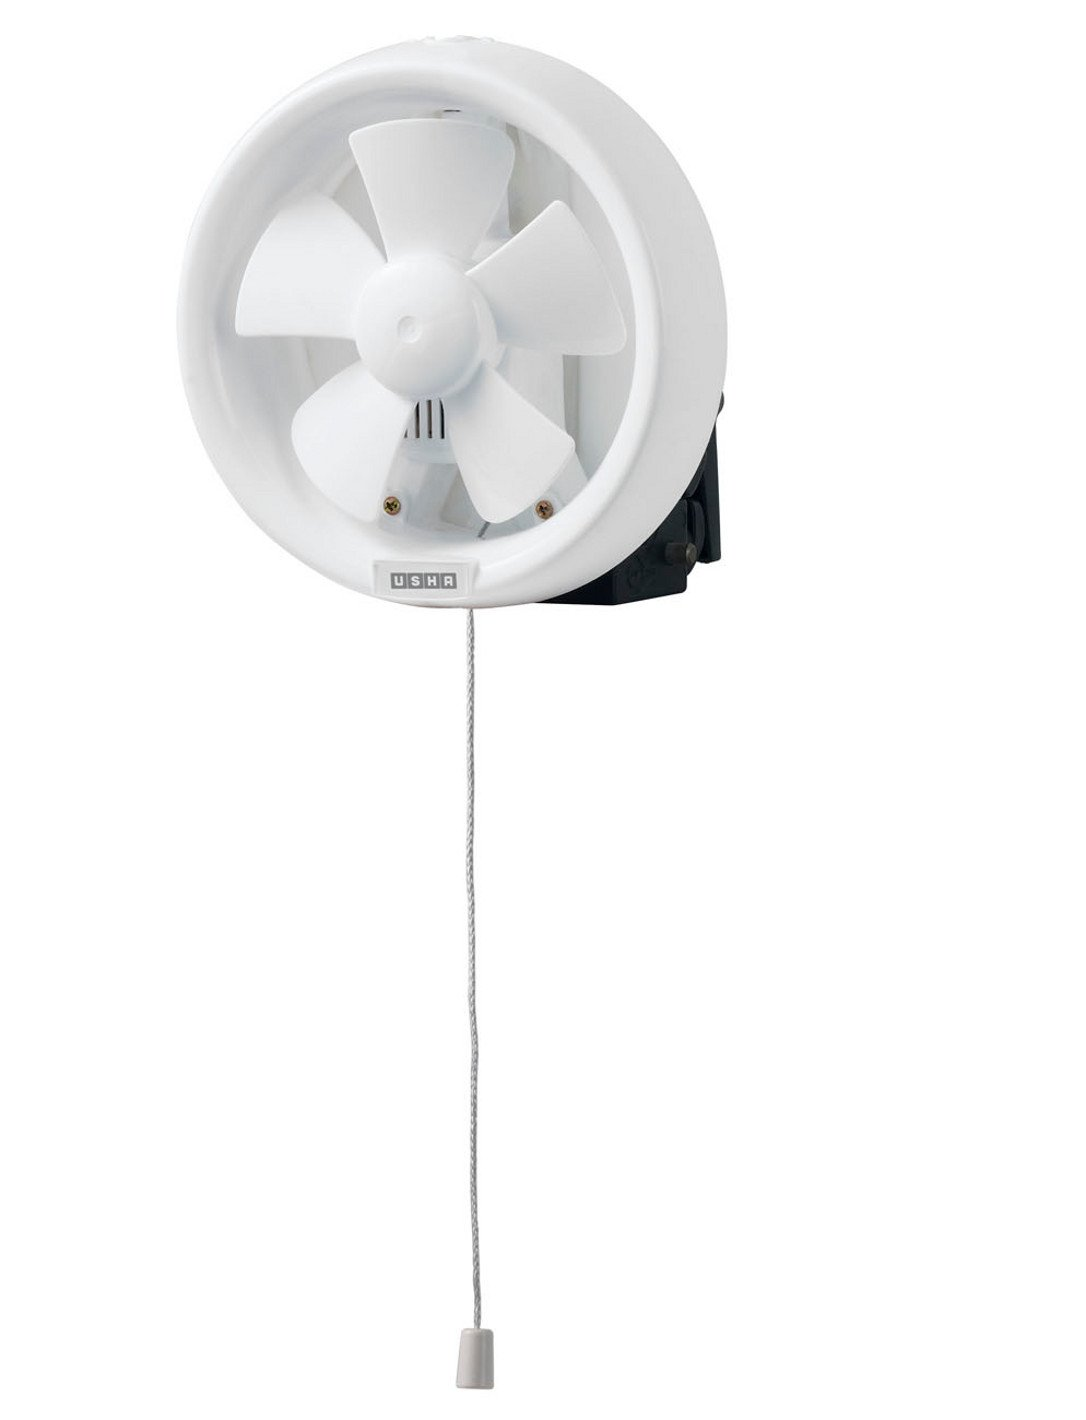 Usha Crisp Air Premia Rv 150mm Exhaust Fan White Home Confused About Wiring Diagram Kitchen